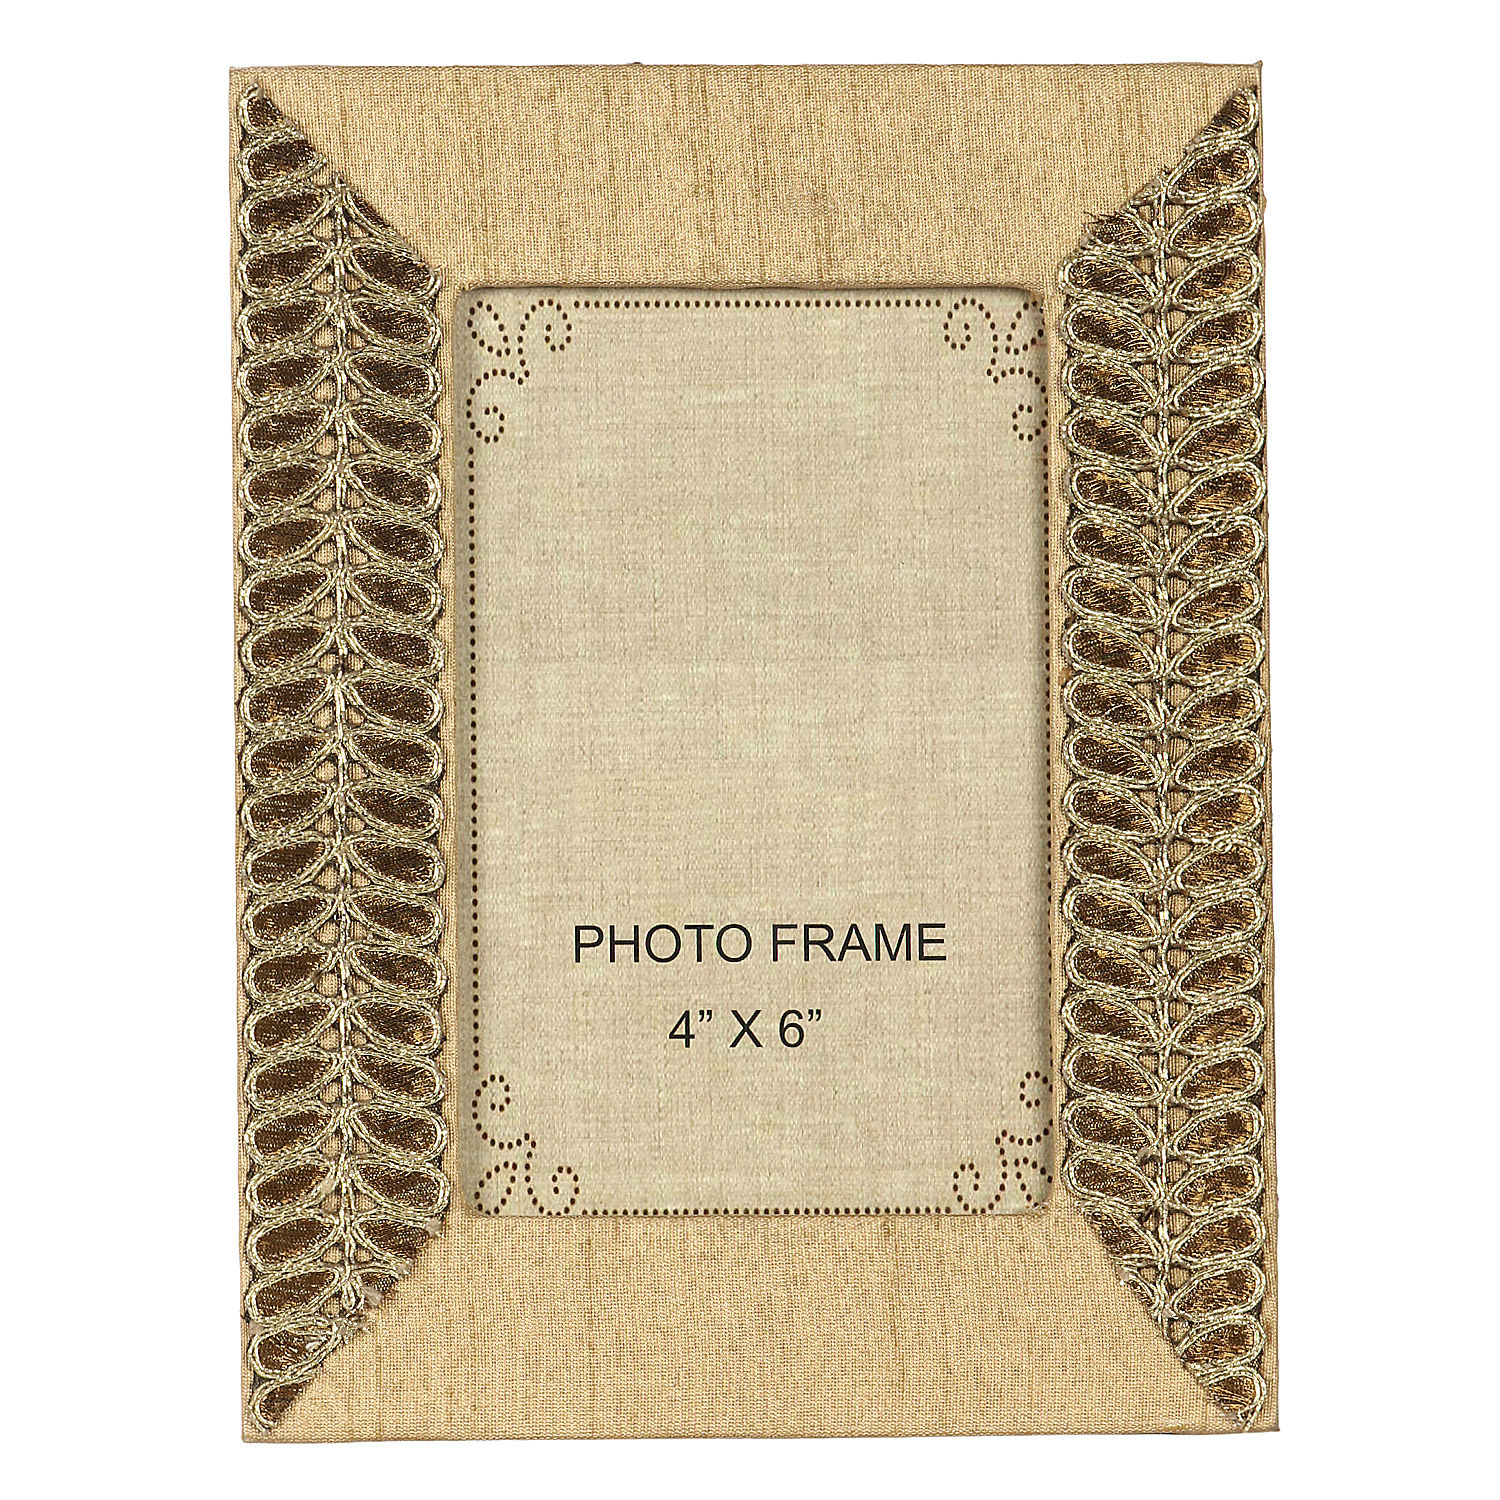 Decor Mart Natural Brown Colour Jute Photo Frame For 6 X 4 Inch Photo